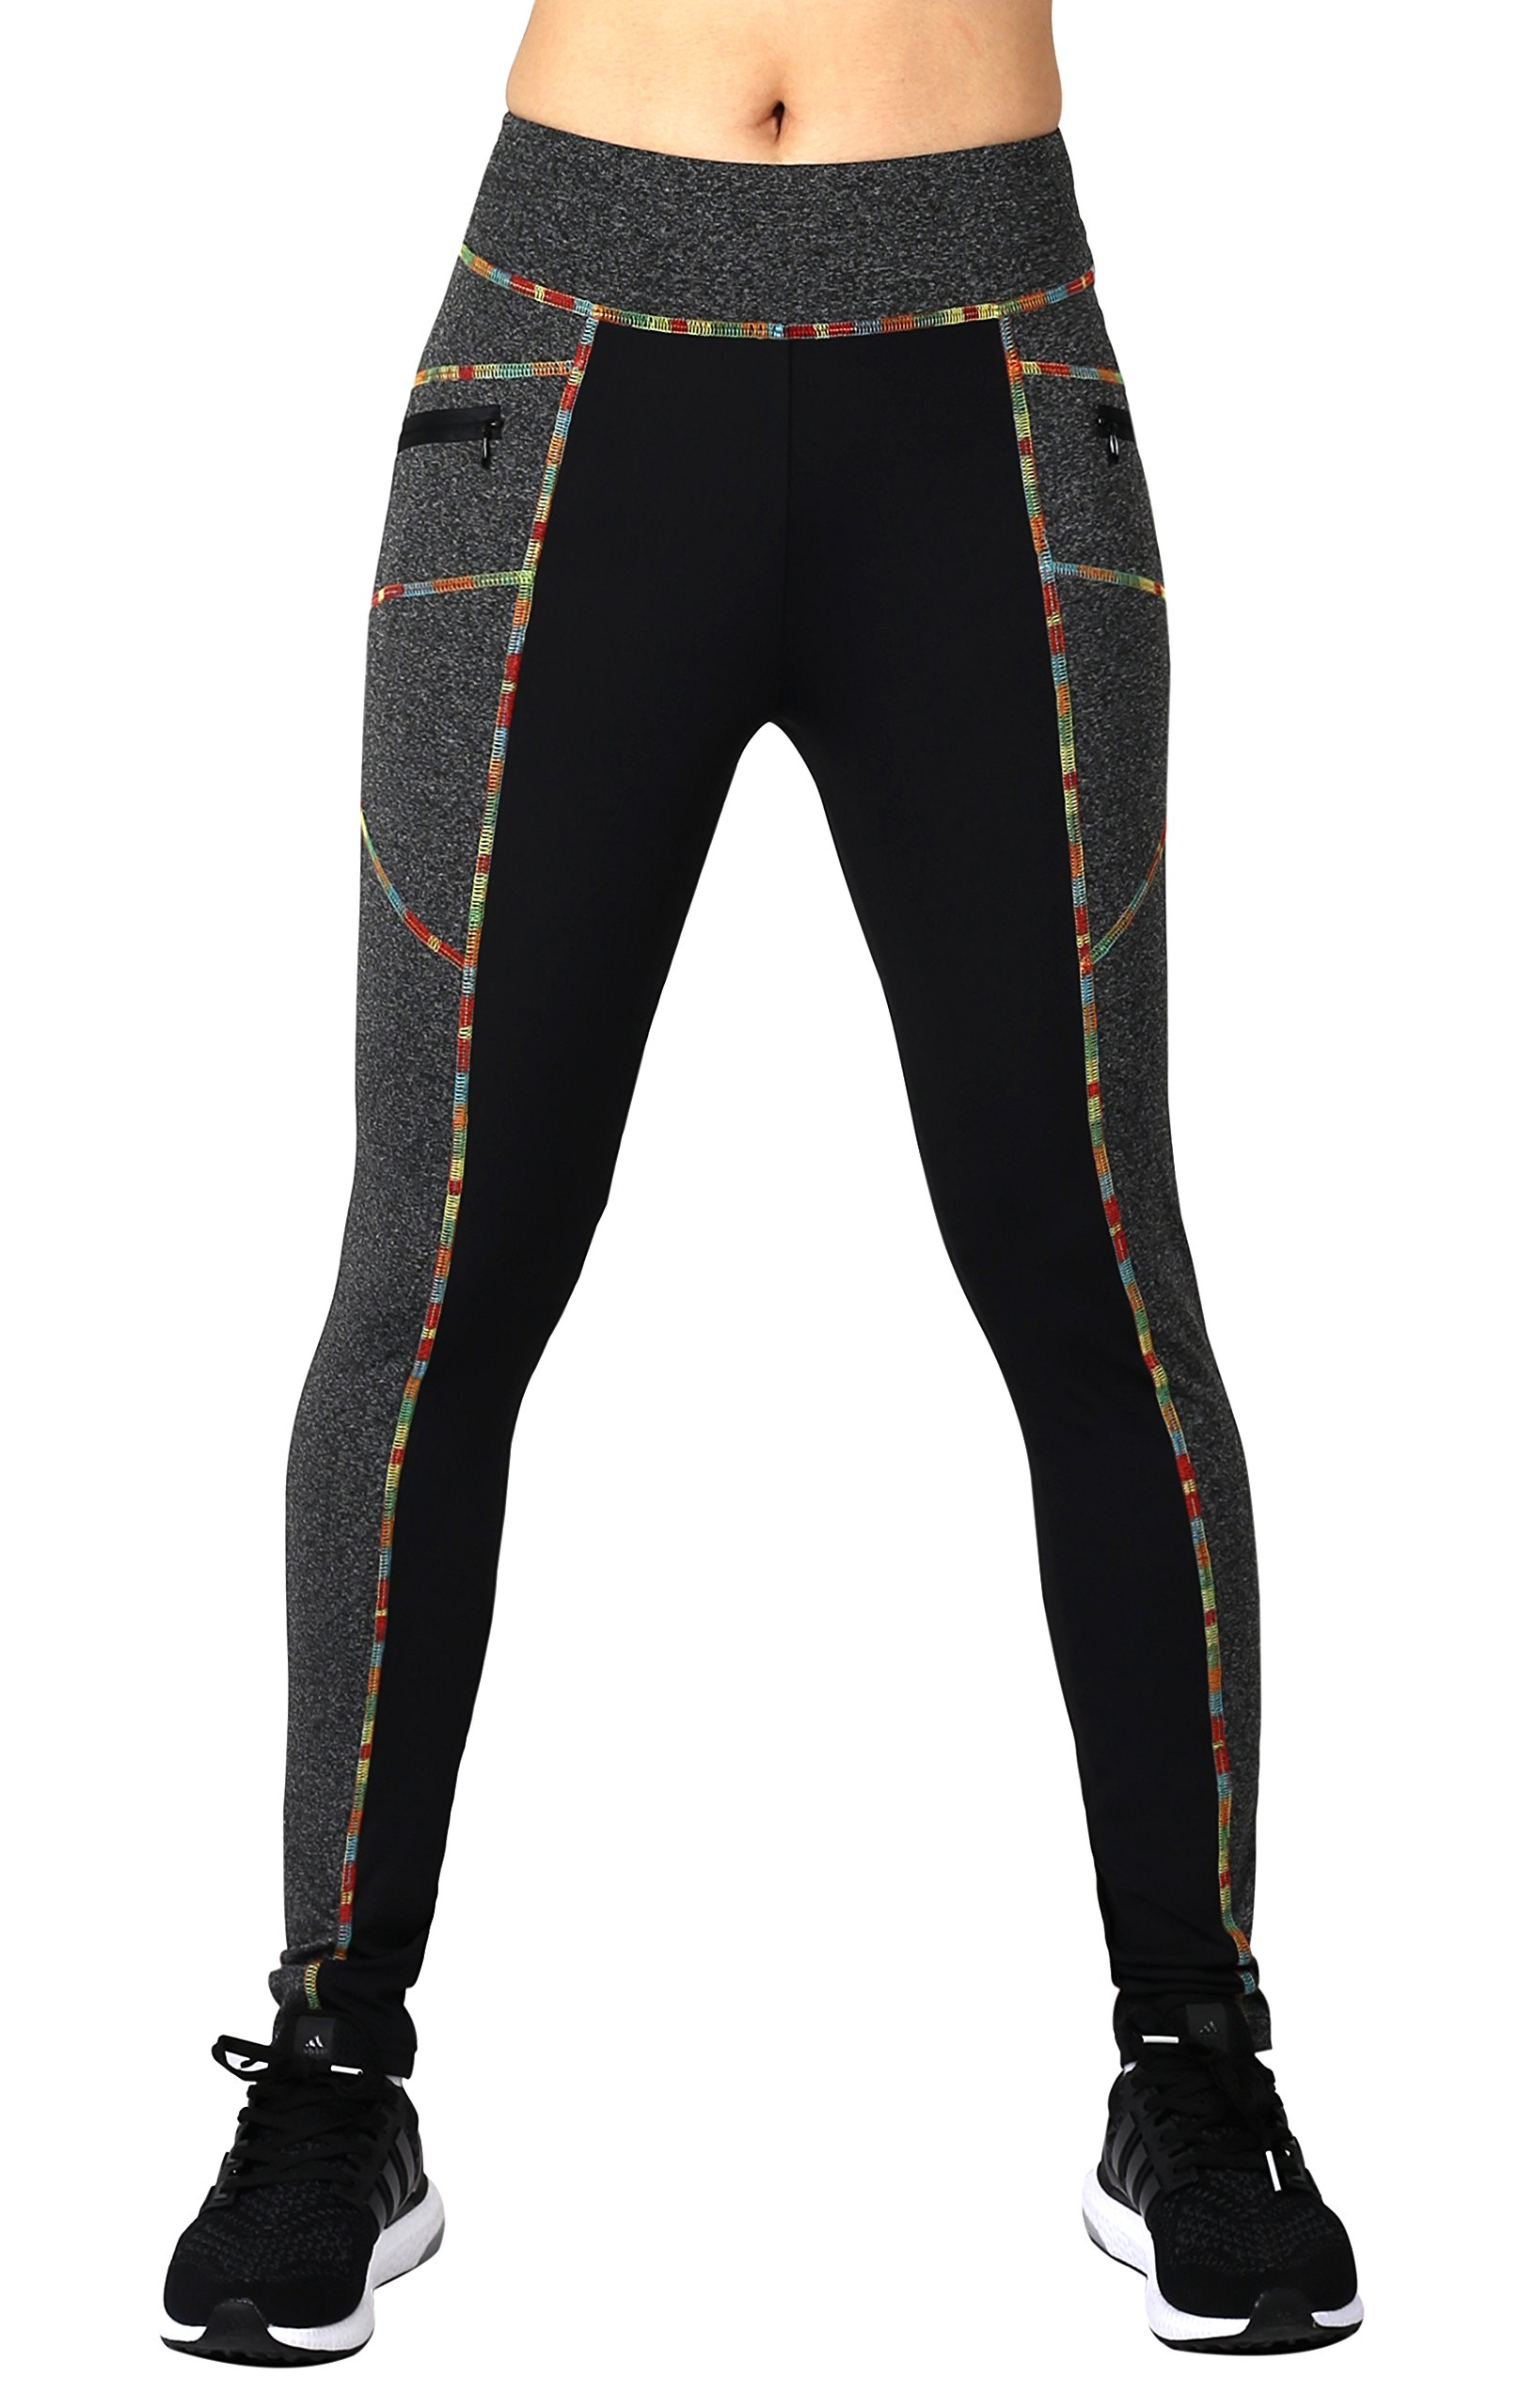 Neonysweets Womens Workout Legging Running Yoga Pants Sports Tights Trousers